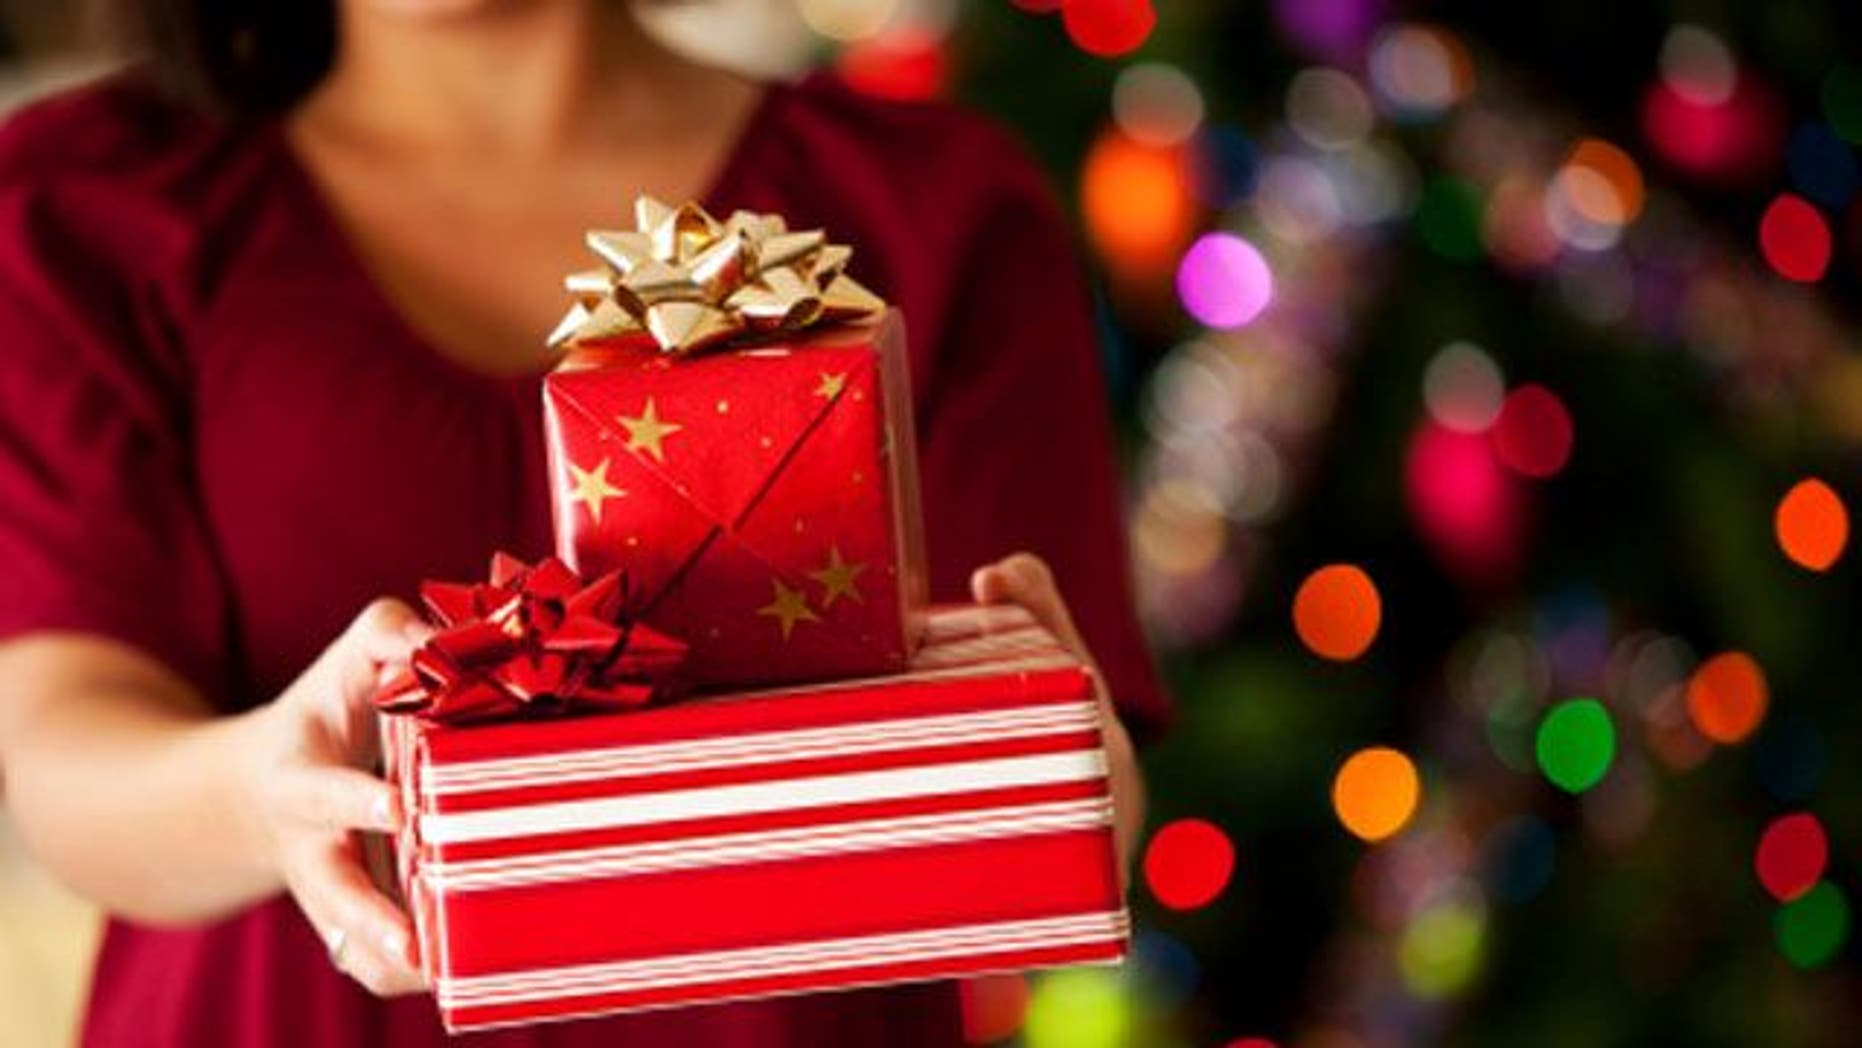 The talk christmas giveaways for needy